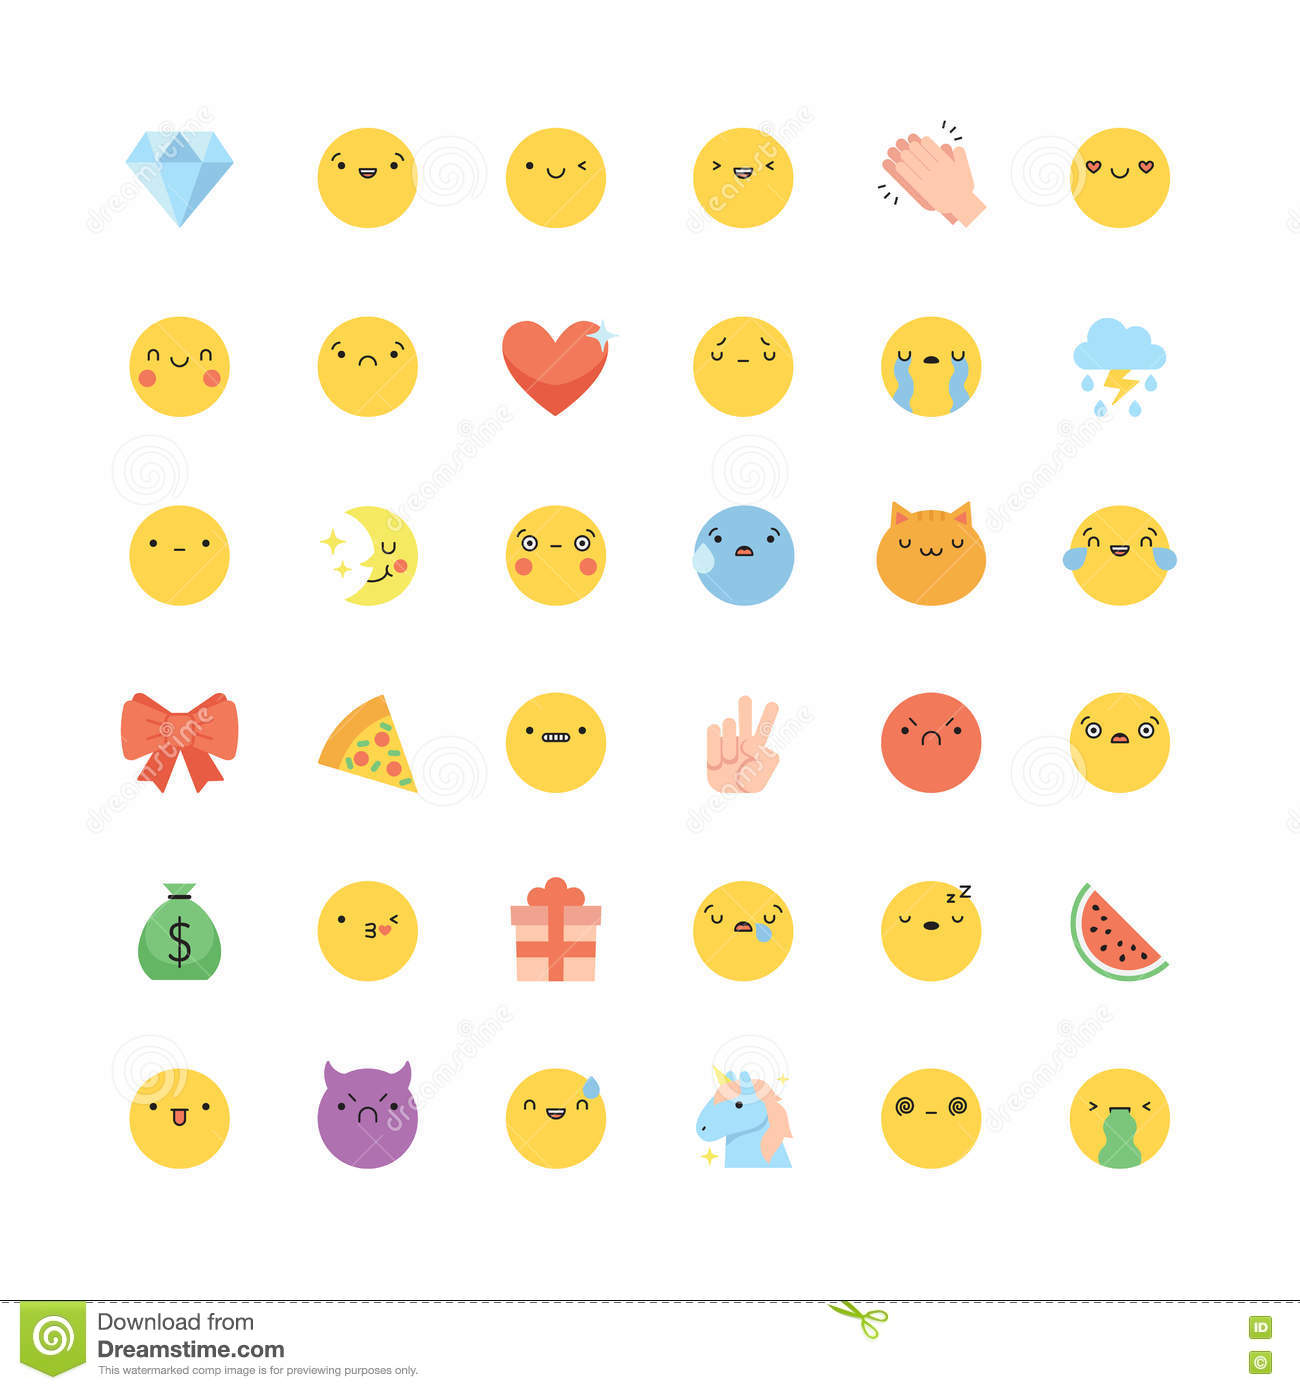 Set emoticons emoji stock photos download 10 images emoji icon vector set flat cute korean style isolated emoticons and symbols royalty free biocorpaavc Image collections